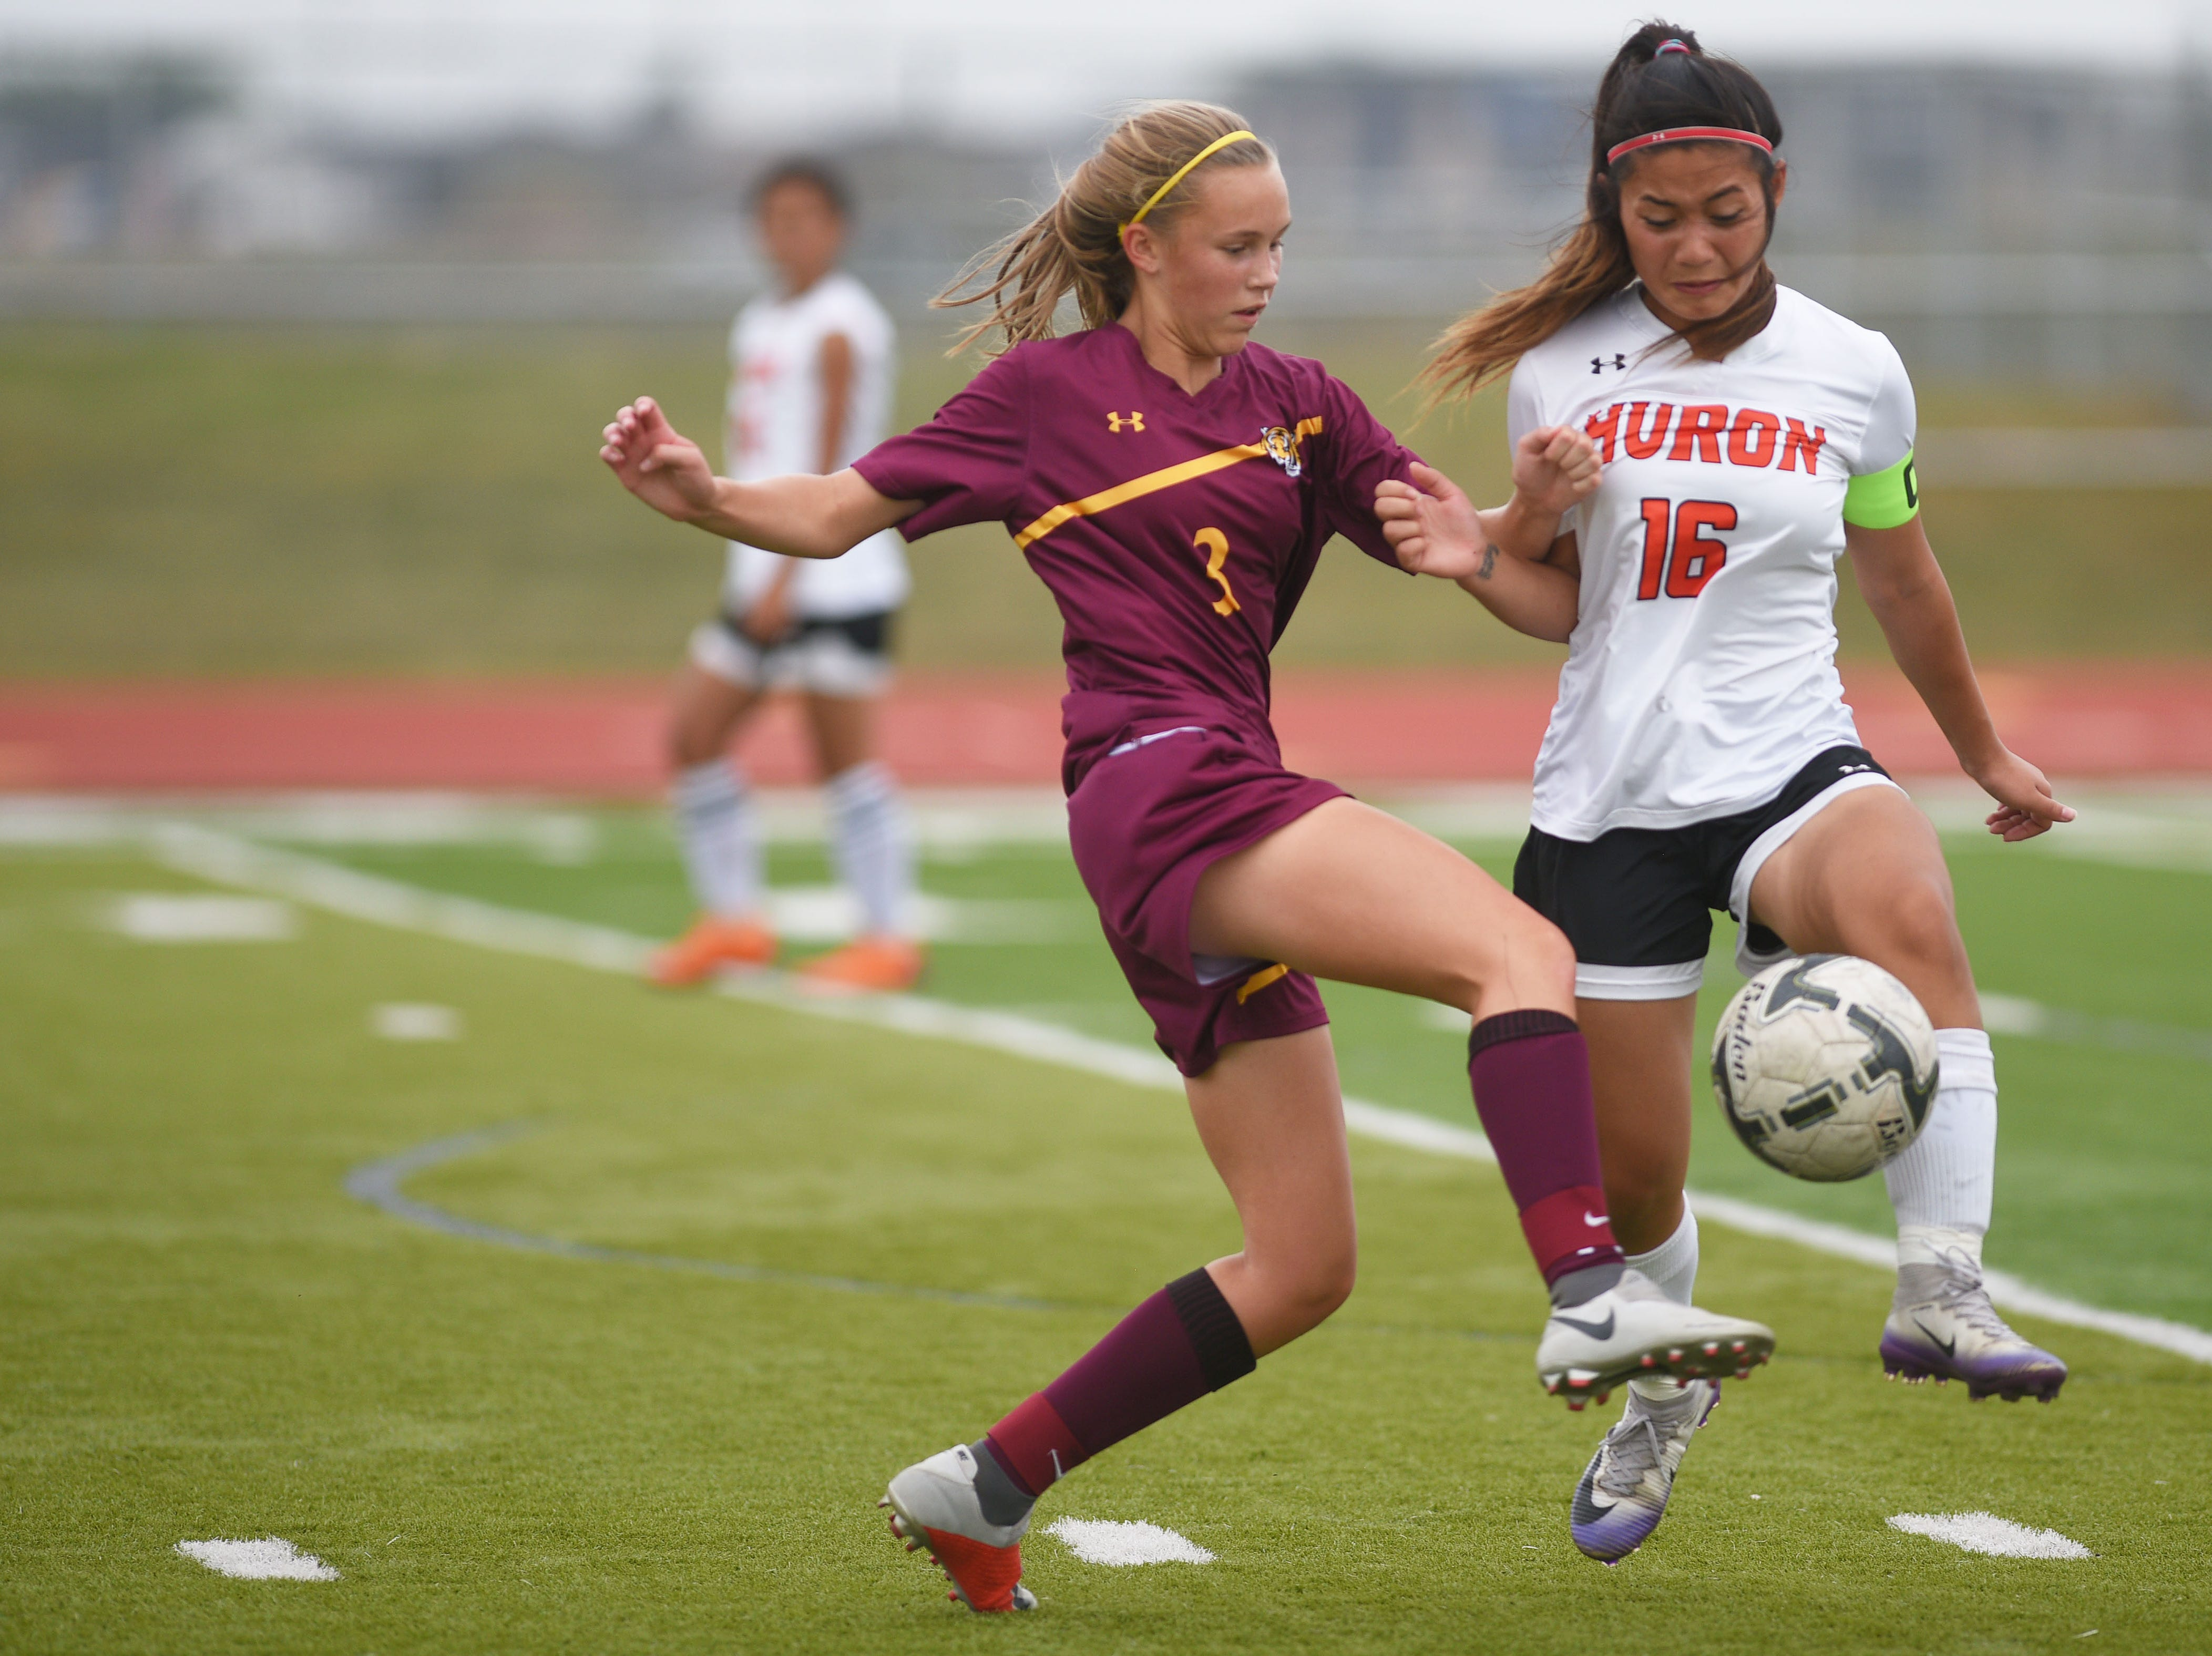 Harrisburg's Sydney Hage goes against Huron's Wah Ku Htoo during the game Thursday, Sept. 13, at Harrisburg.